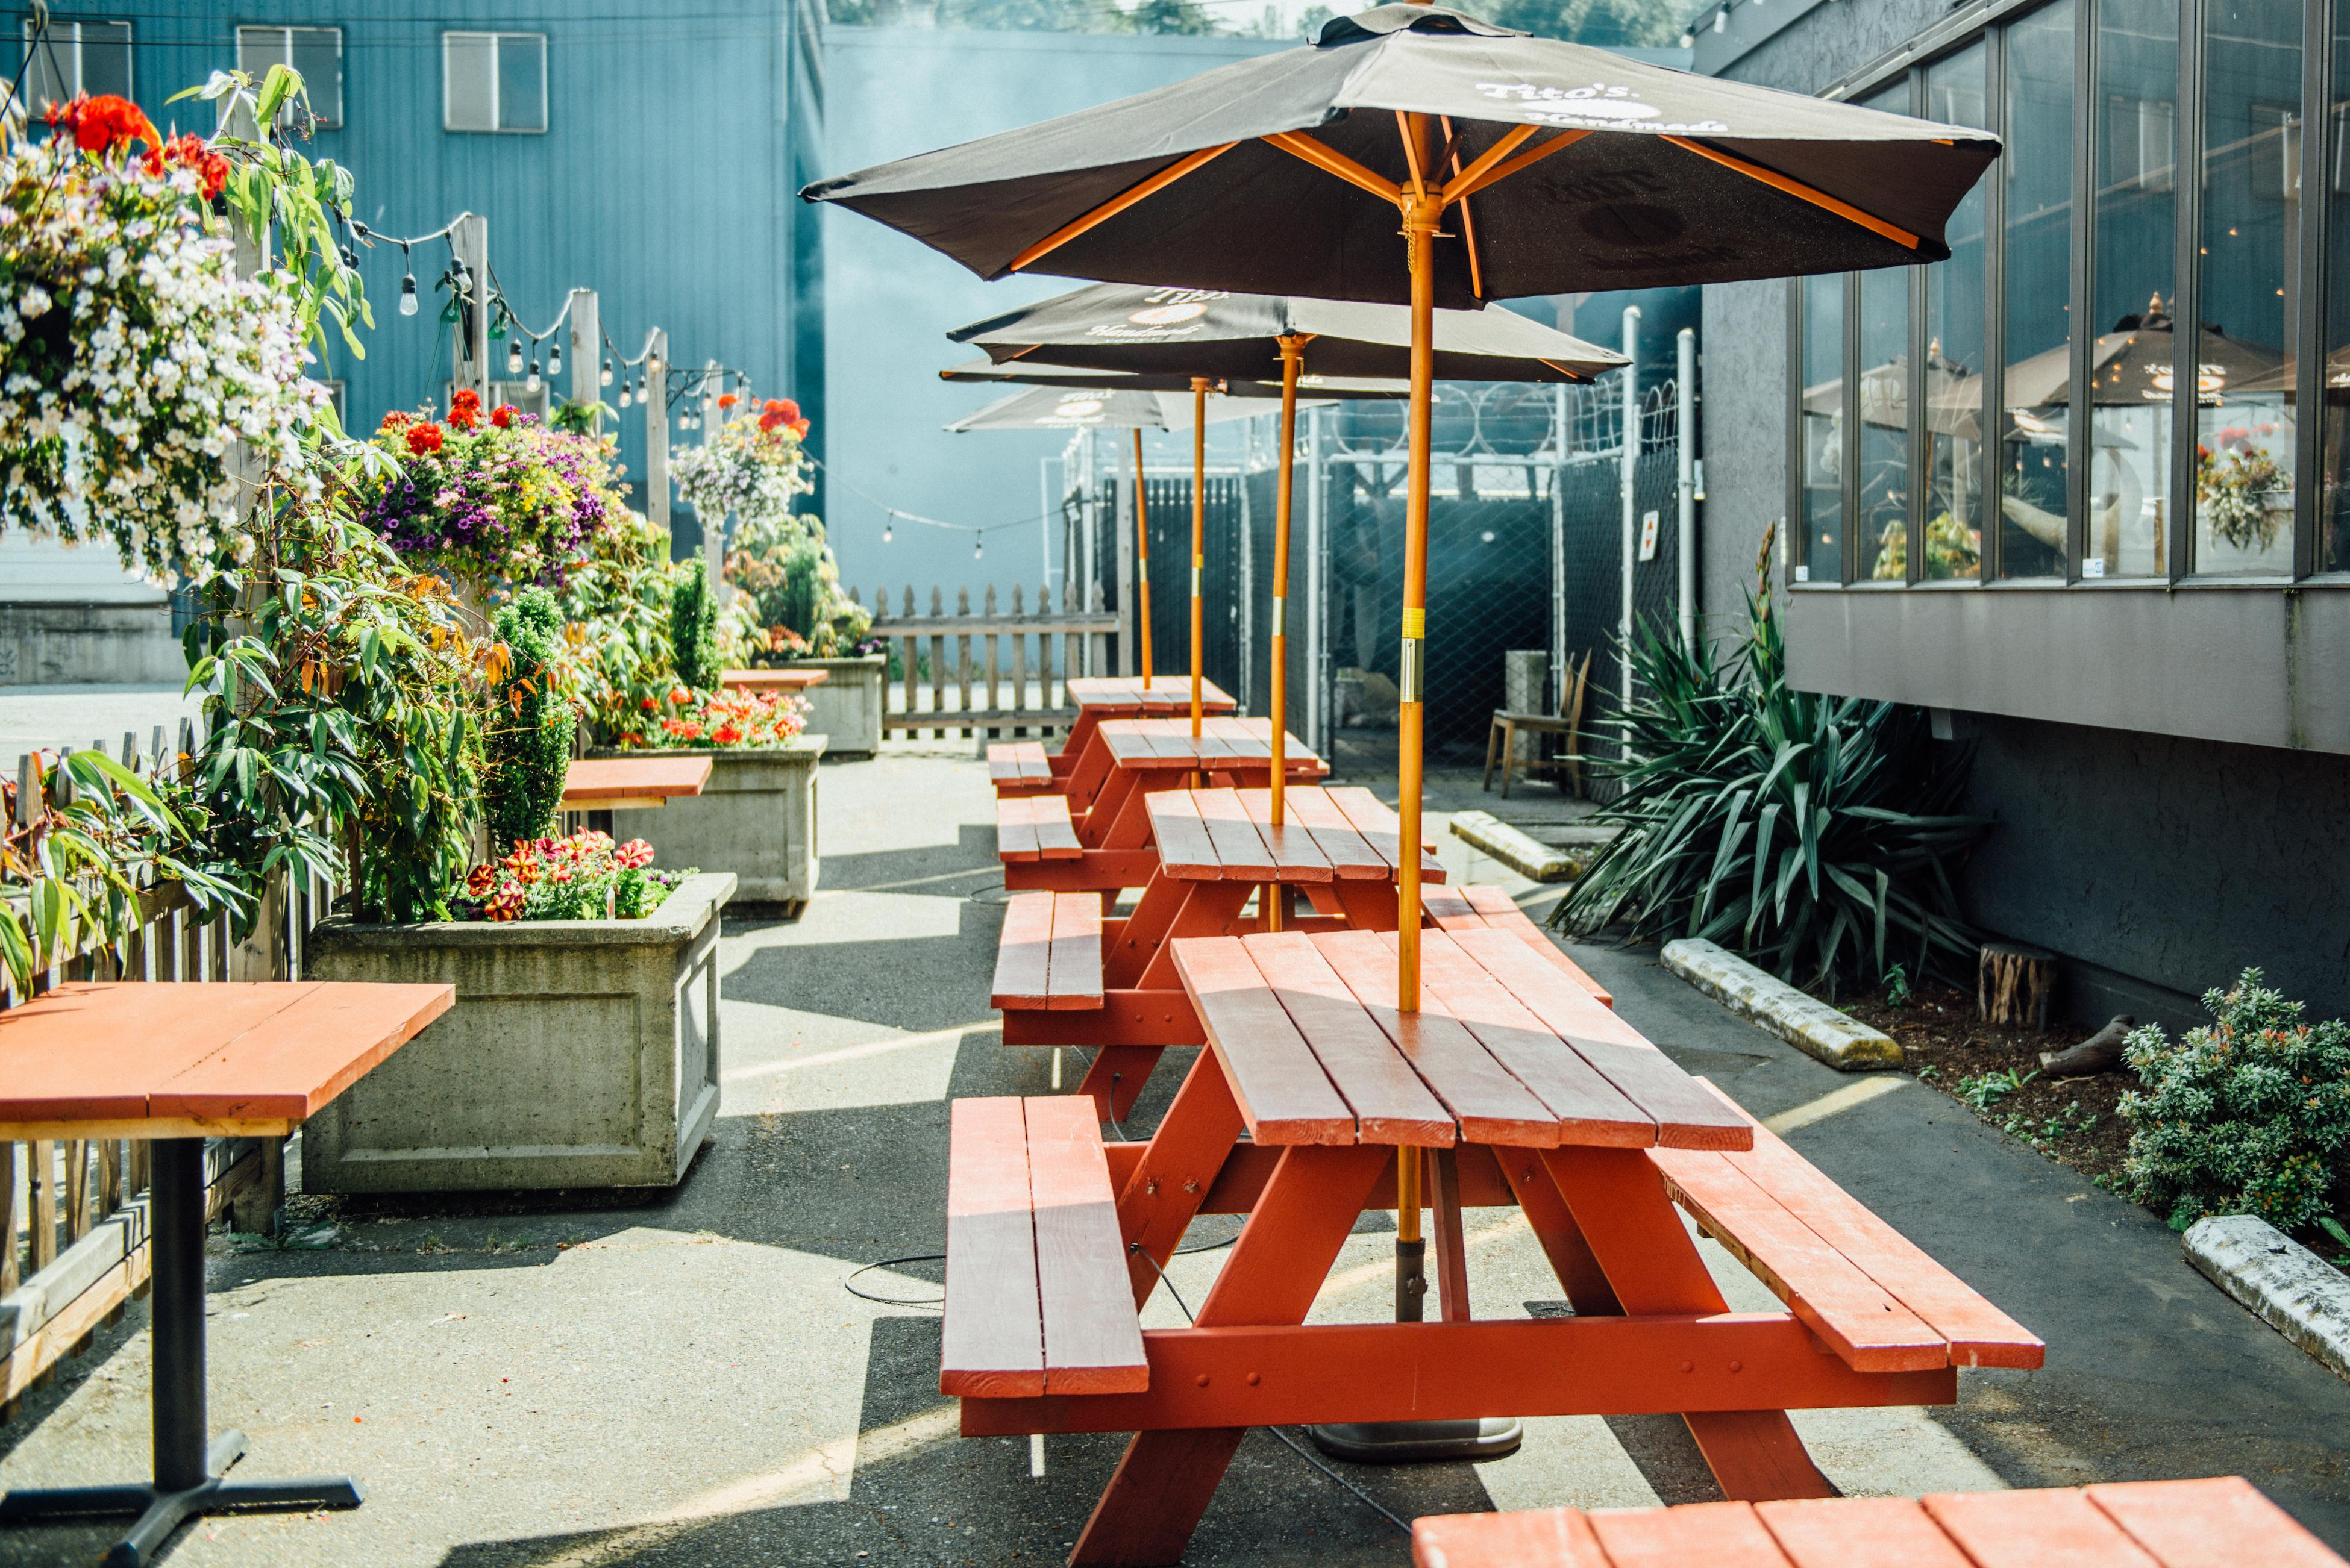 The patio at Jack's BBQ in SoDo. (Image: Audrey Kelly)